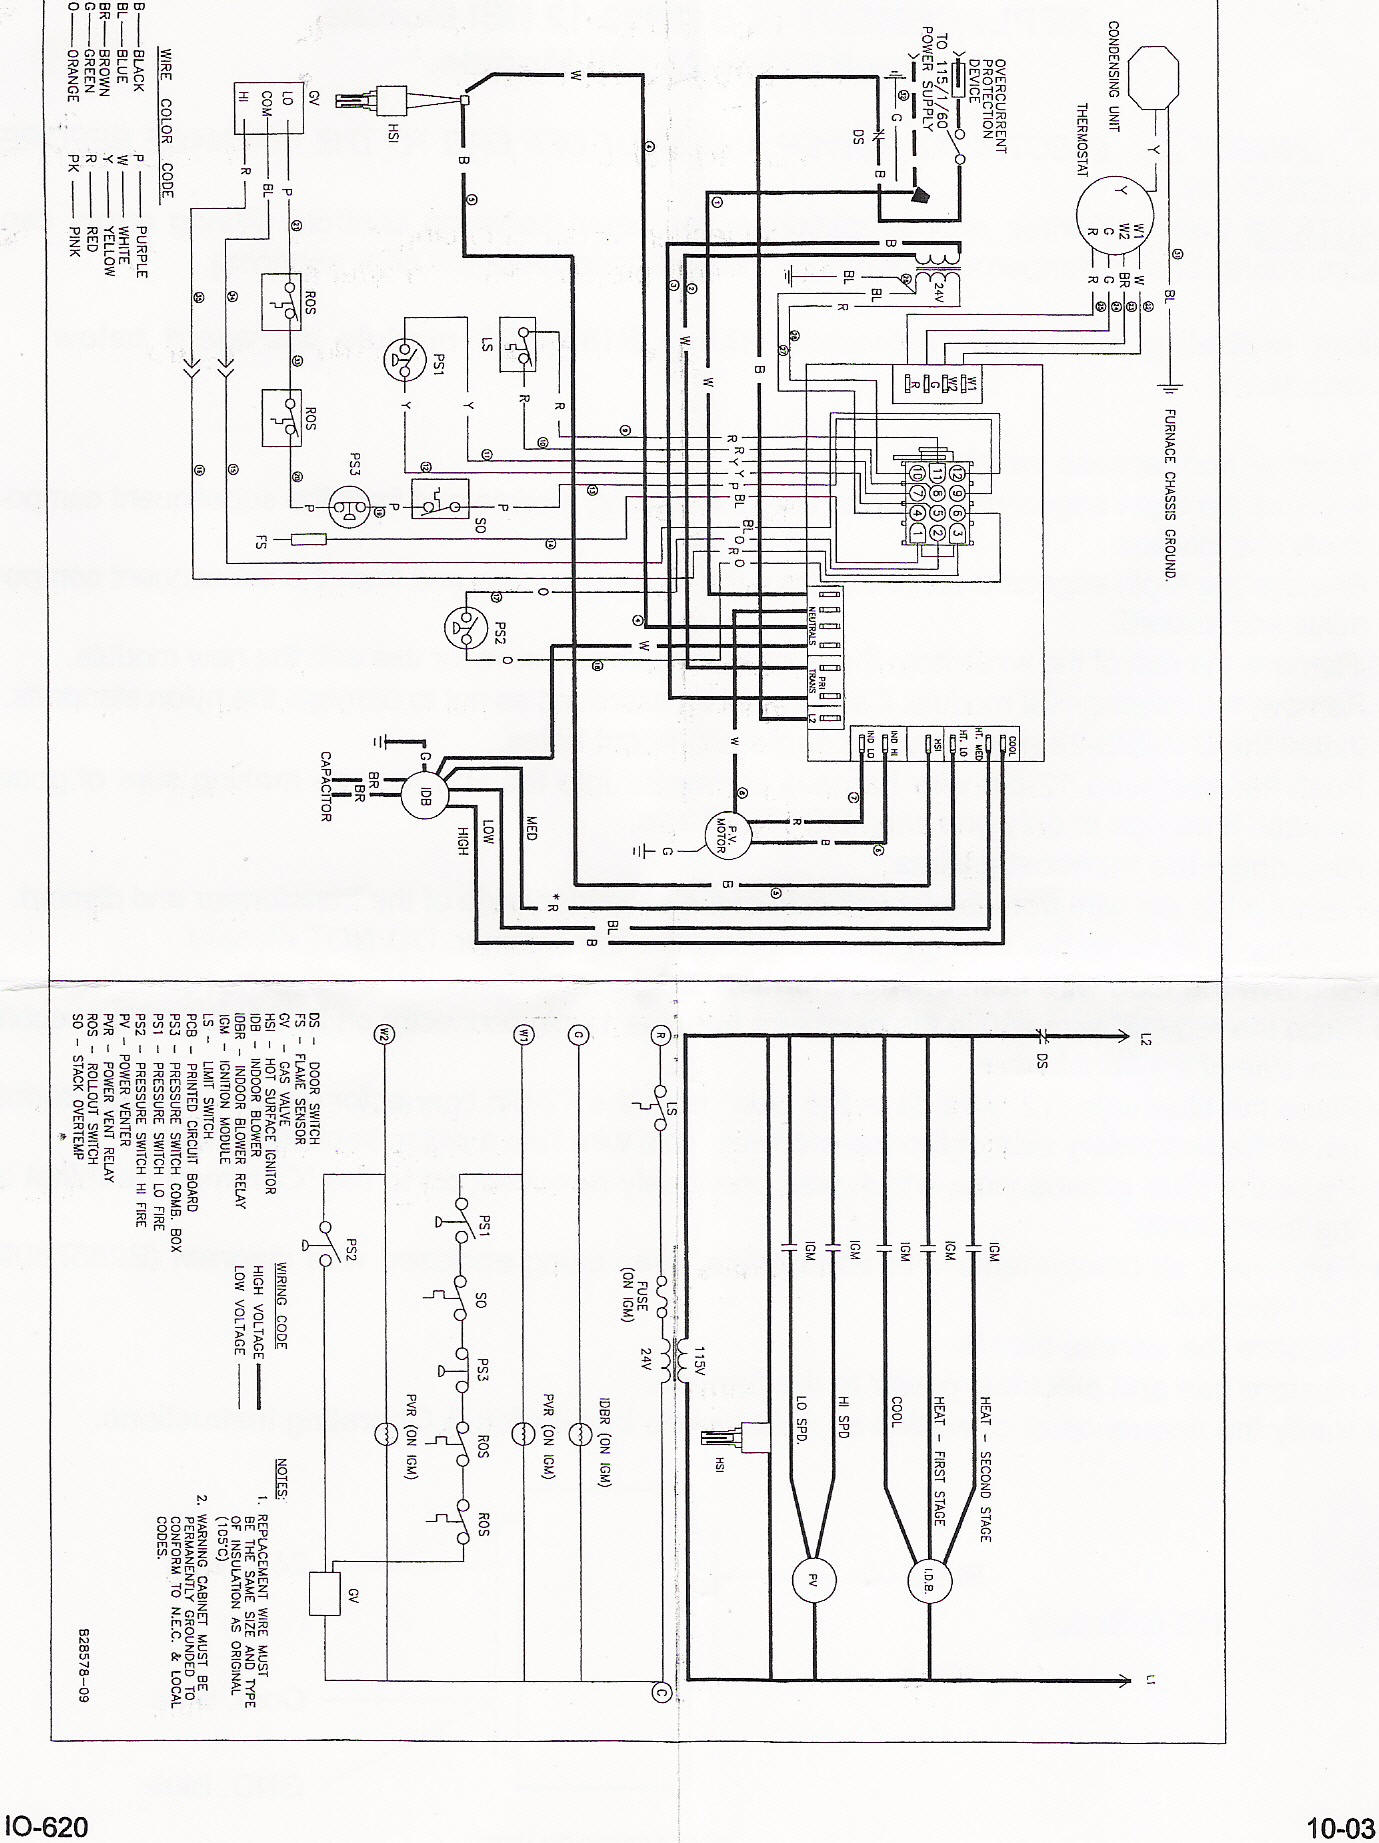 goodma2 instr goodman control board b18099 23 instructions goodman furnace wiring diagram at bakdesigns.co